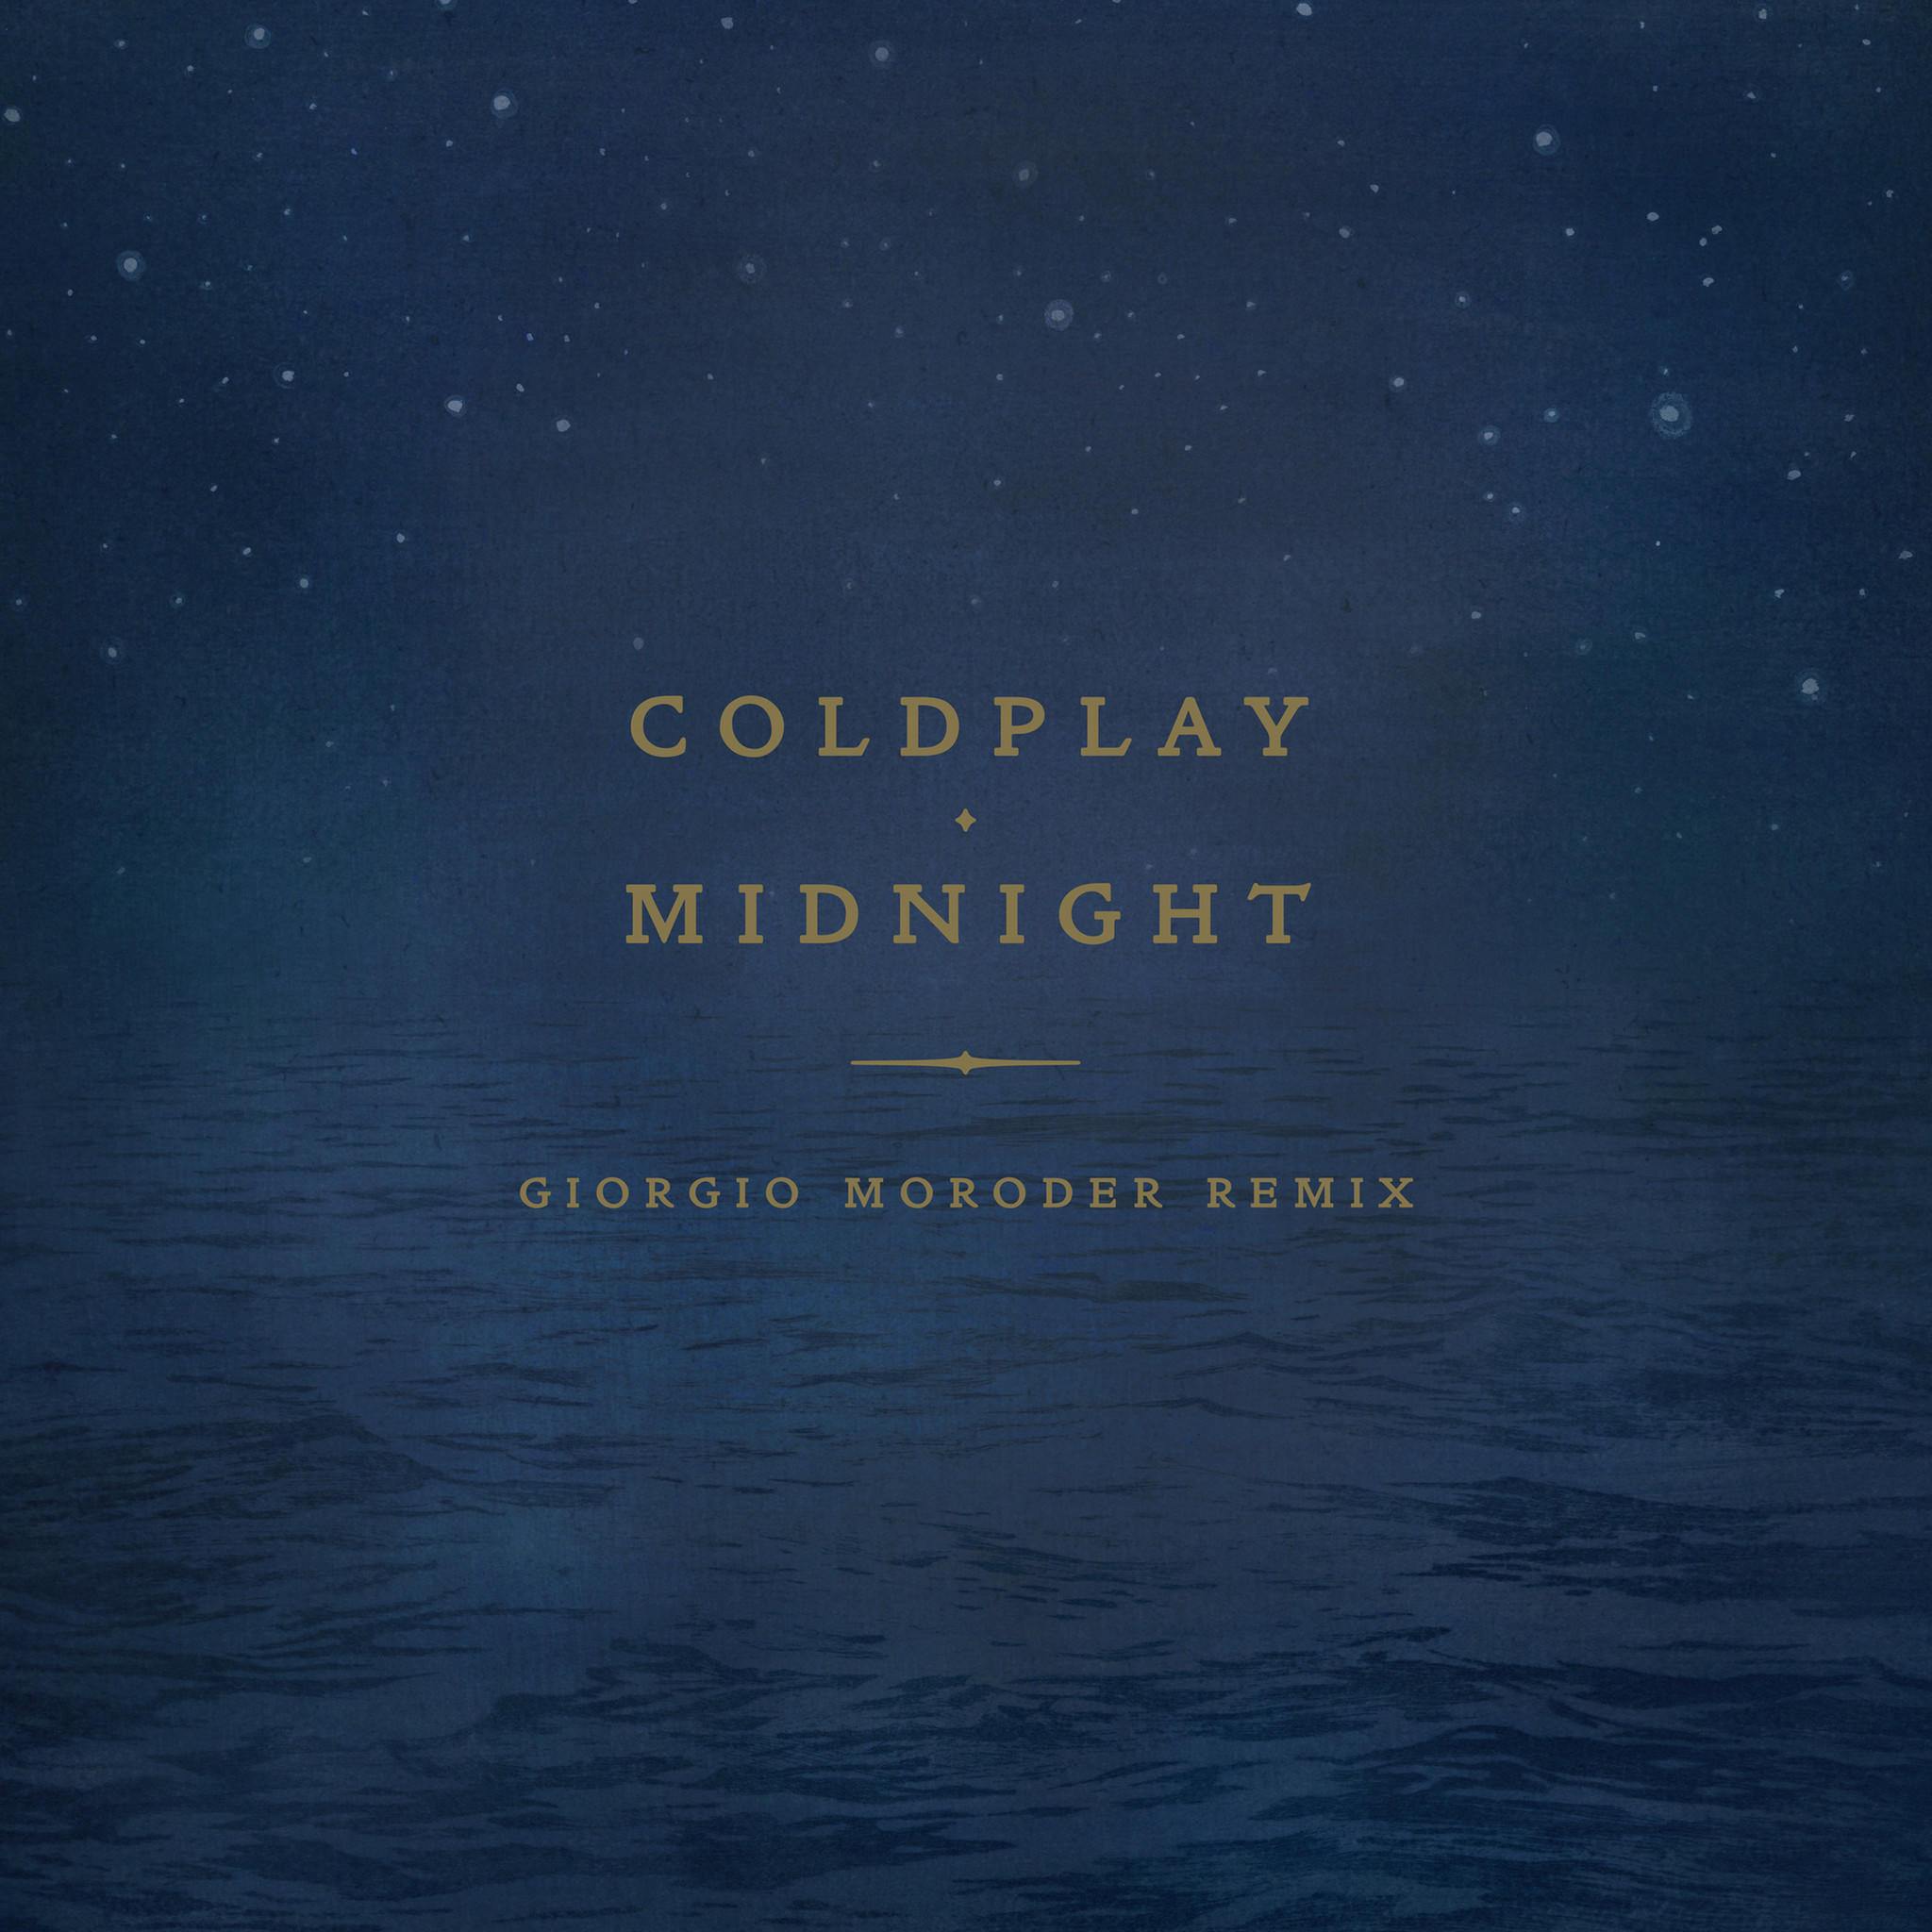 """Coldplay's """"Midnight,"""" as remixed by Giorgio Moroder."""